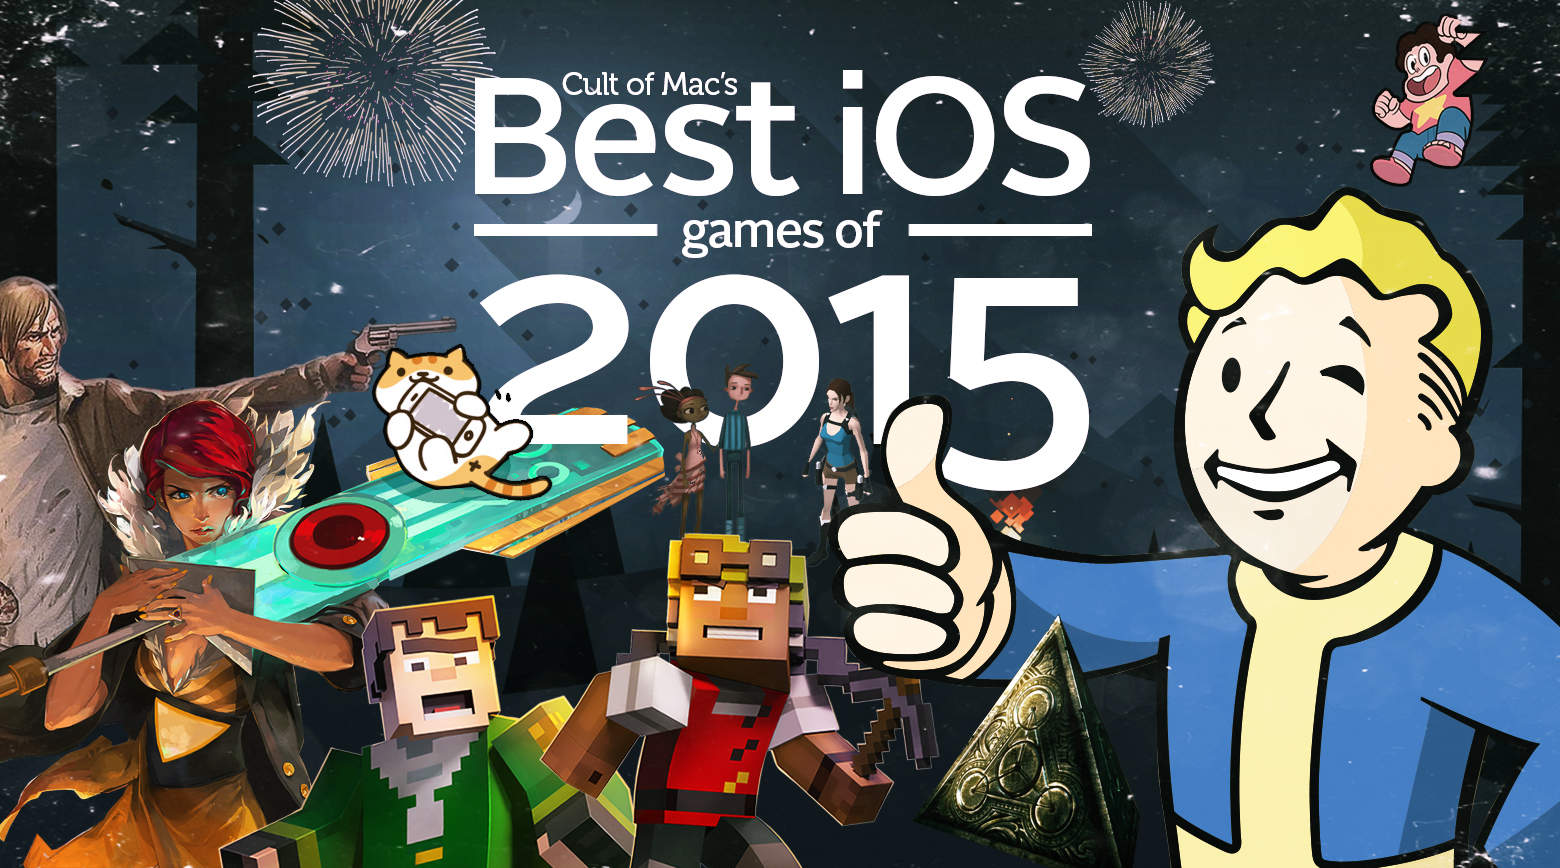 List Of Best Ios Games